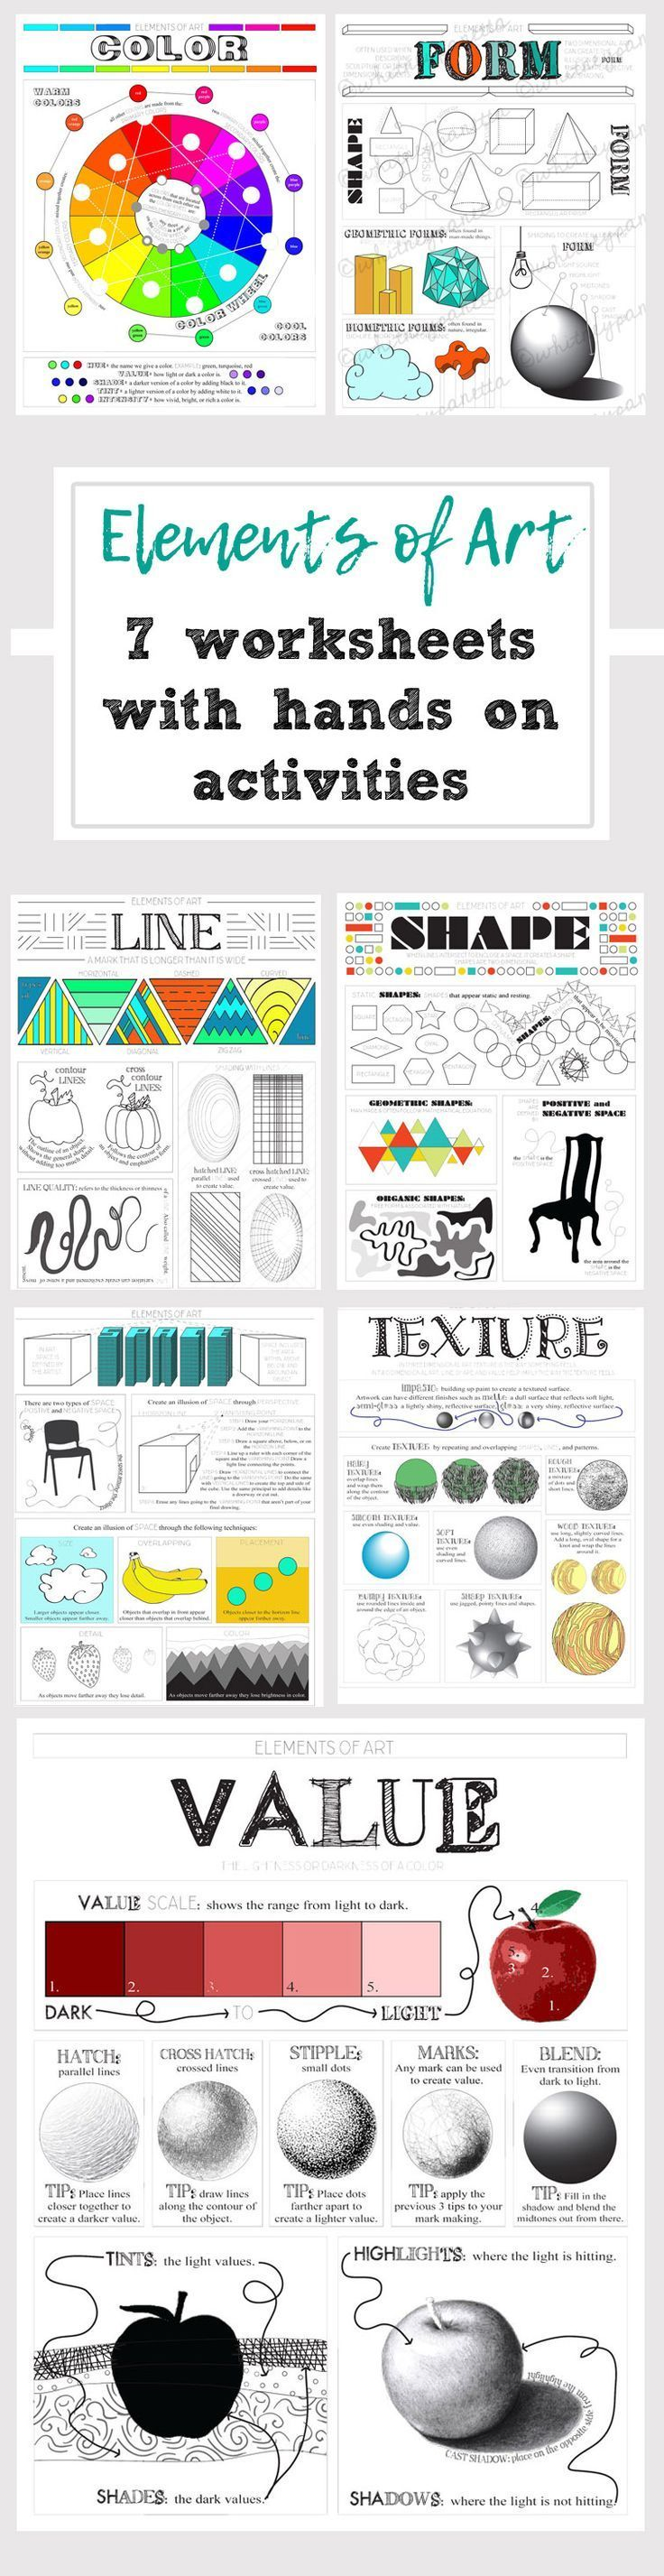 Teach your students about the elements of art through 7 modern worksheets with in-depth explanations and hands on activities on the back.